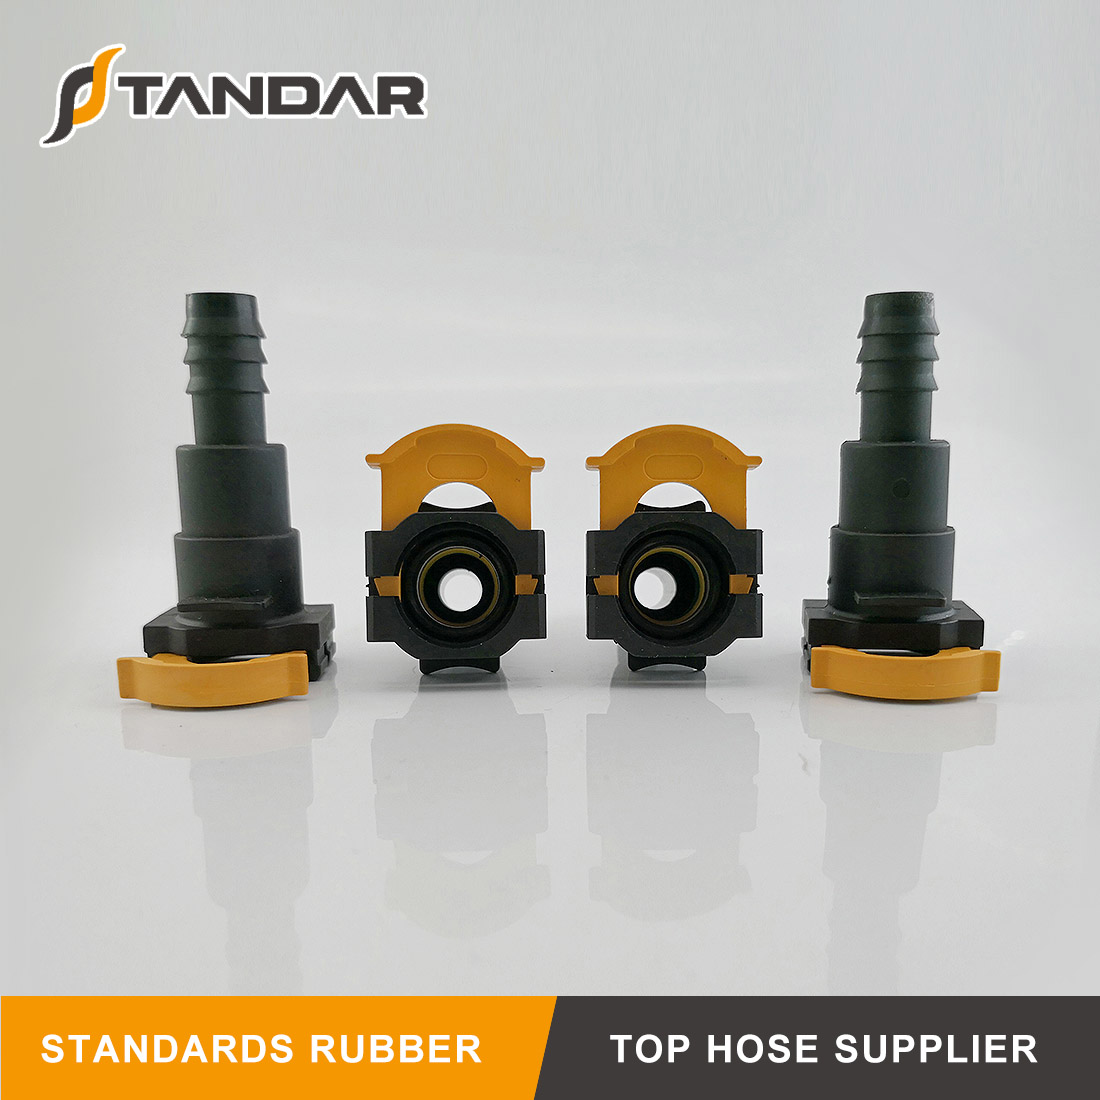 SAE J2044 Diesel Fuel Line Quick Connector from China manufacturer